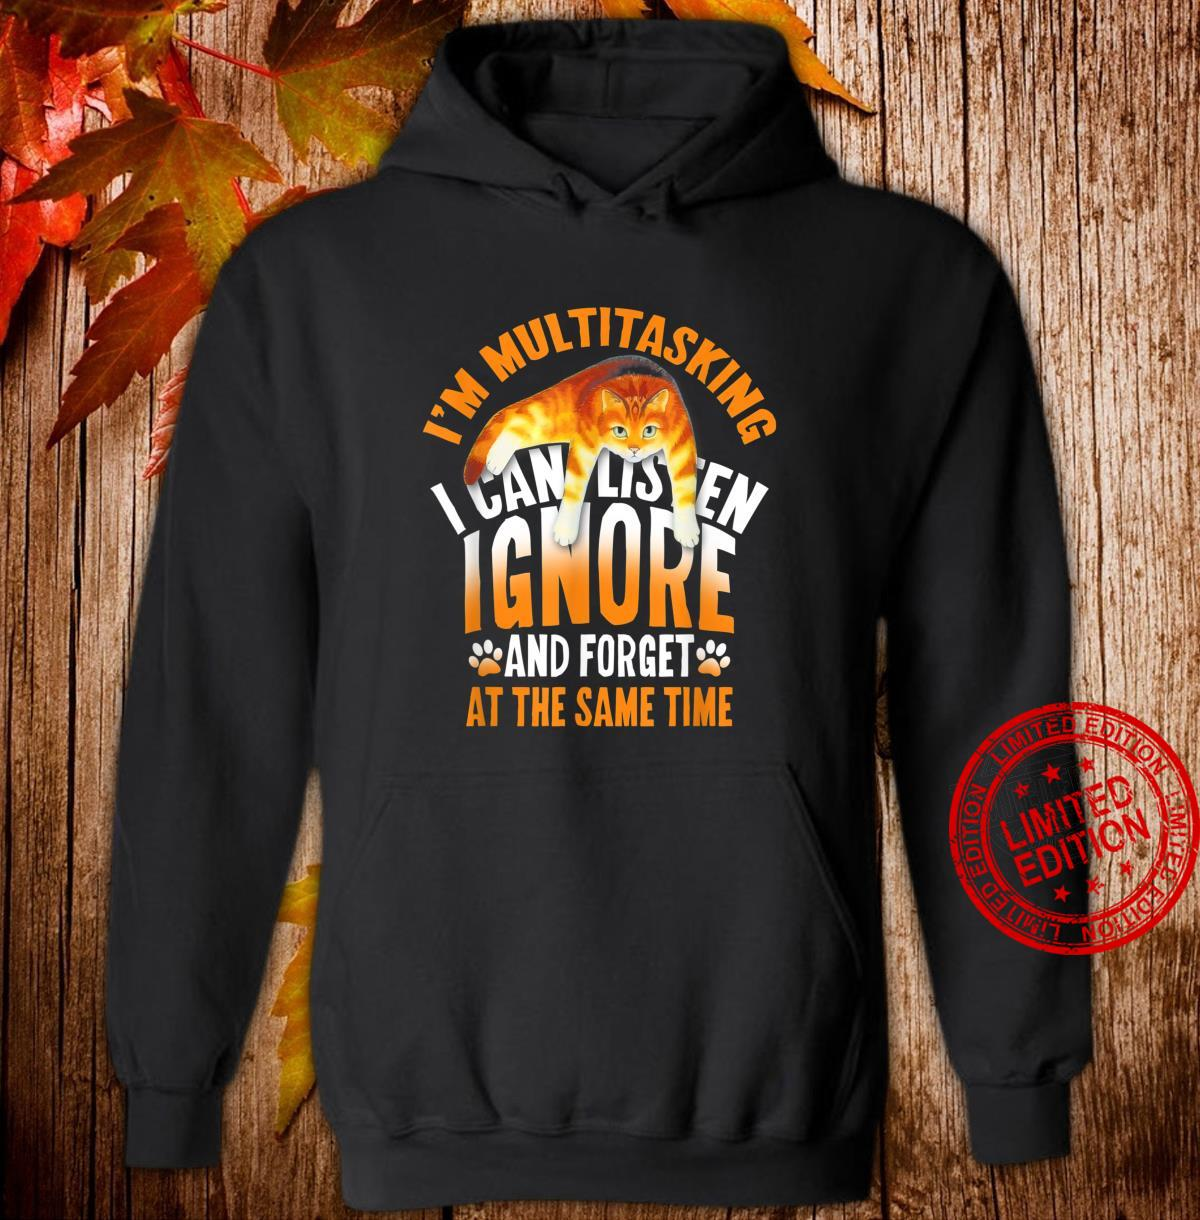 I'M MULTITASKING I CAN LISTEN IGNORE FORGET THE SAME TIME Shirt hoodie